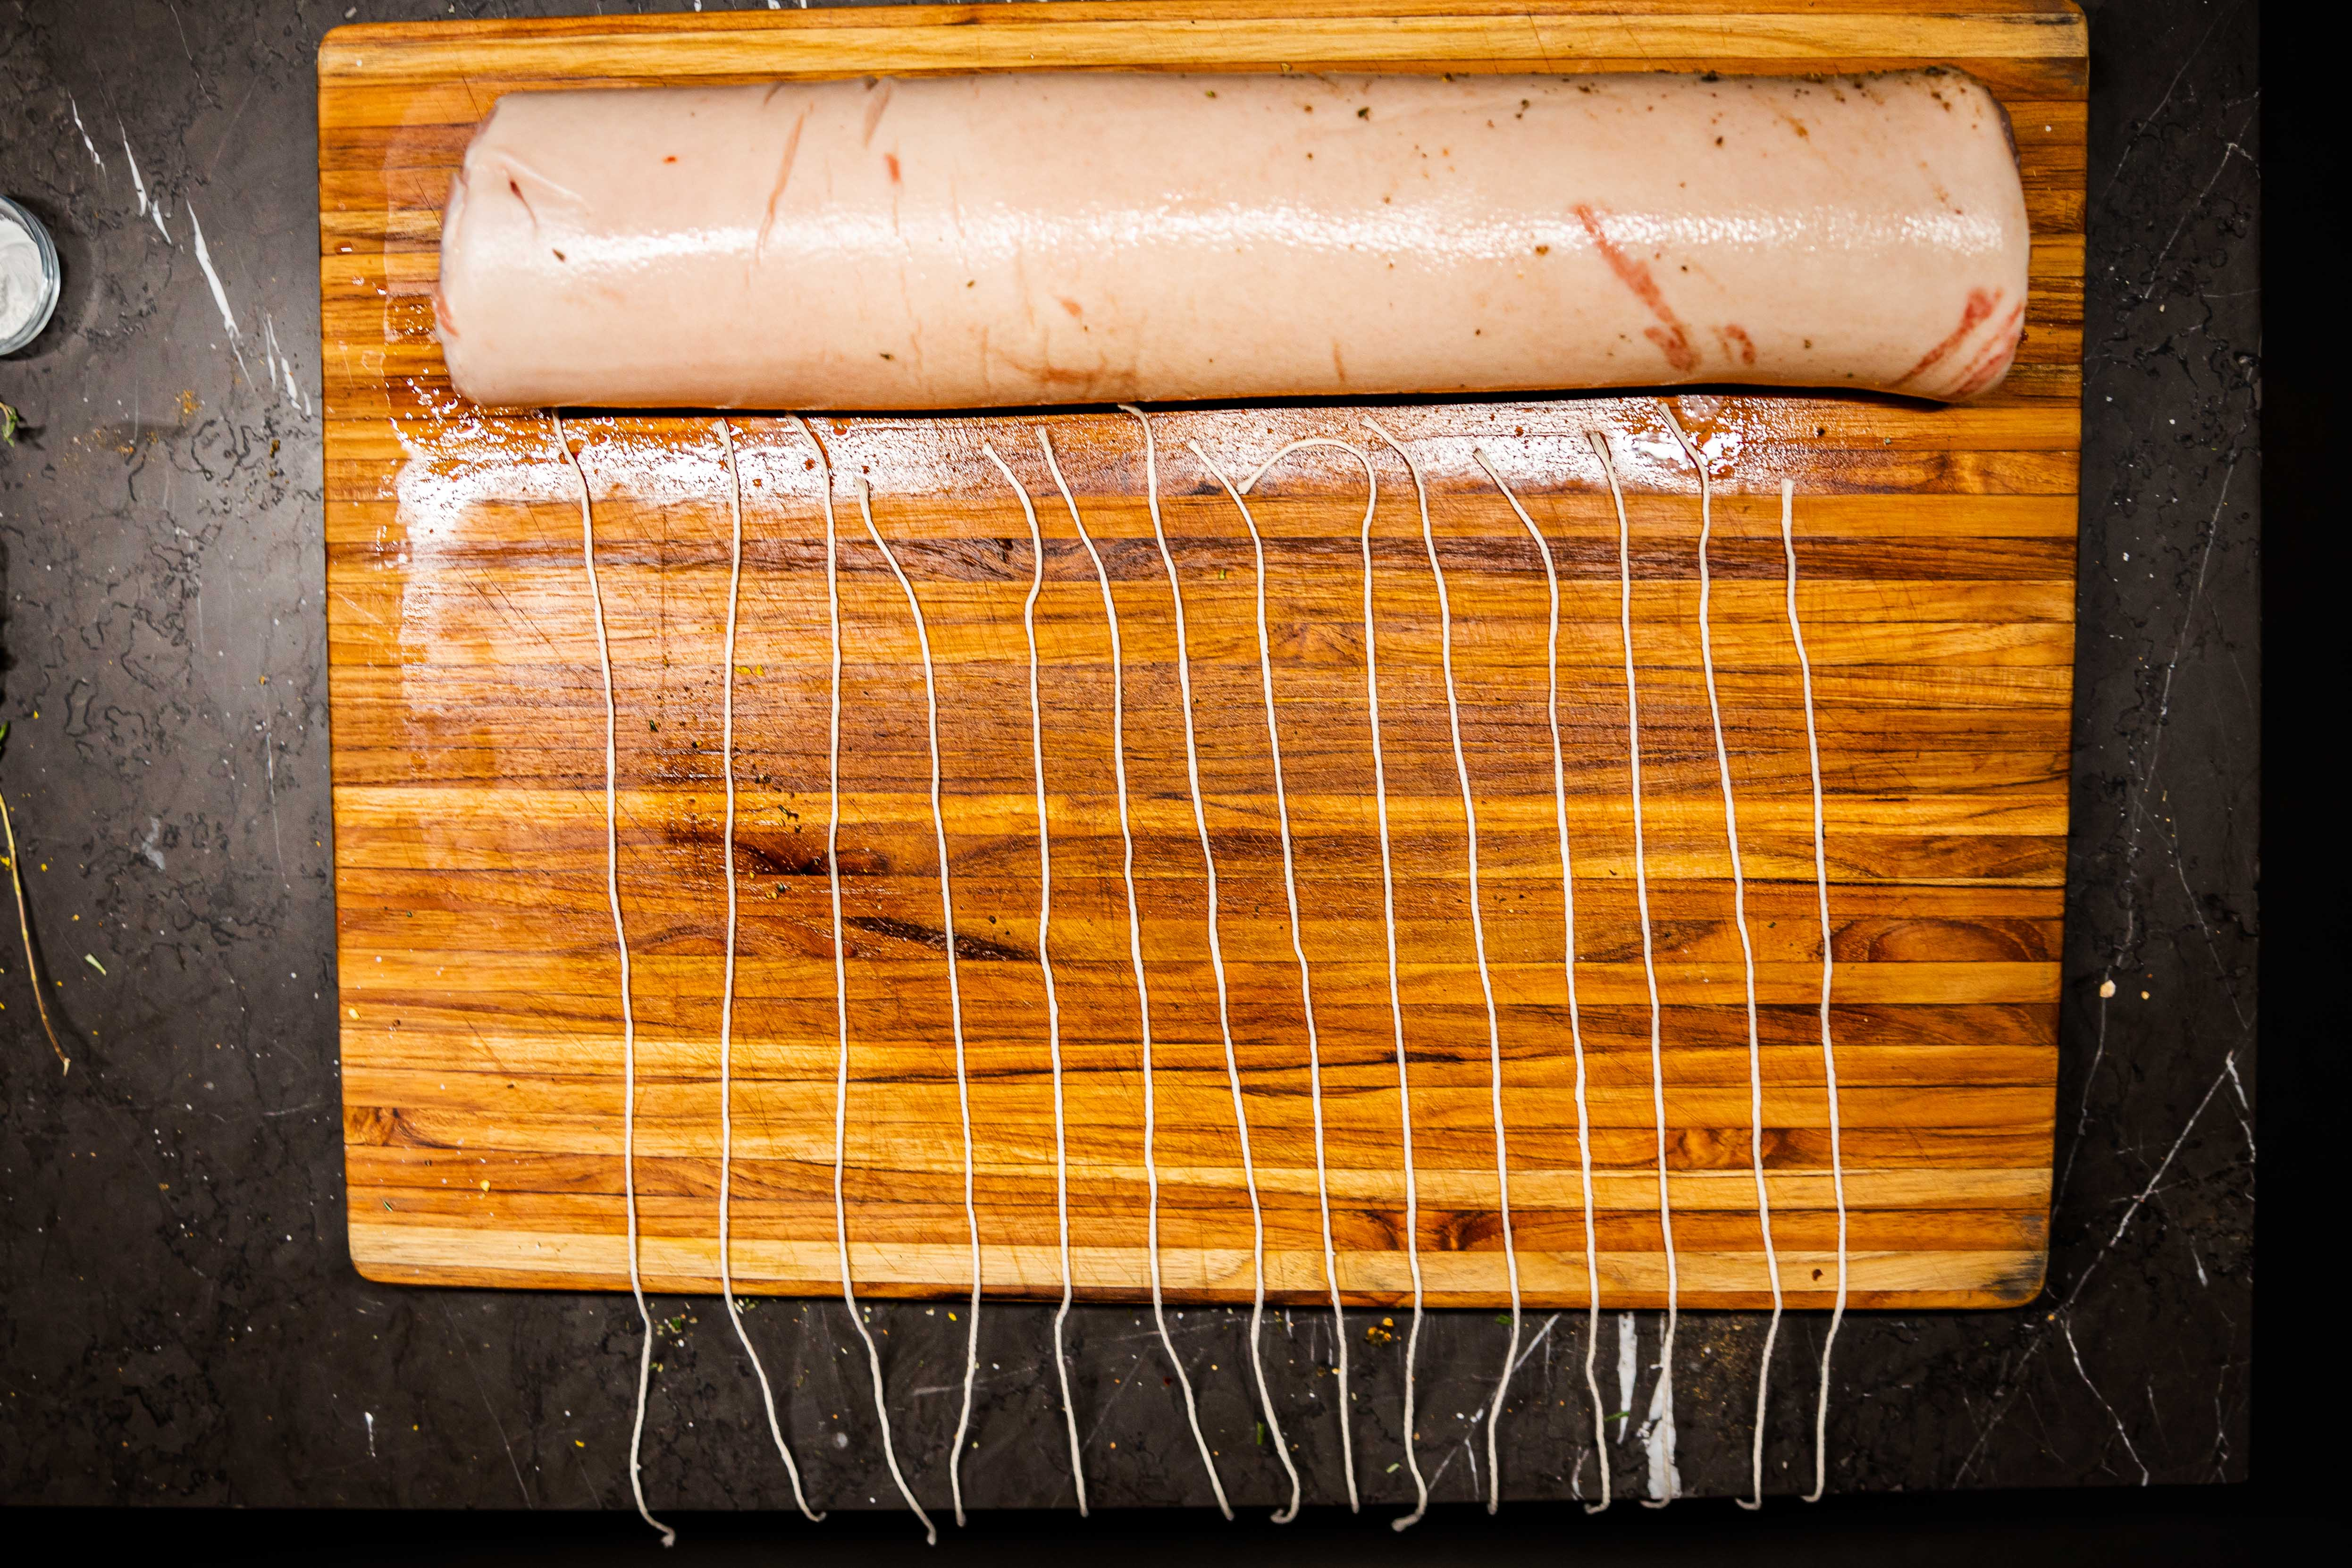 A rolled up pork belly, with twine laid out for tying it up